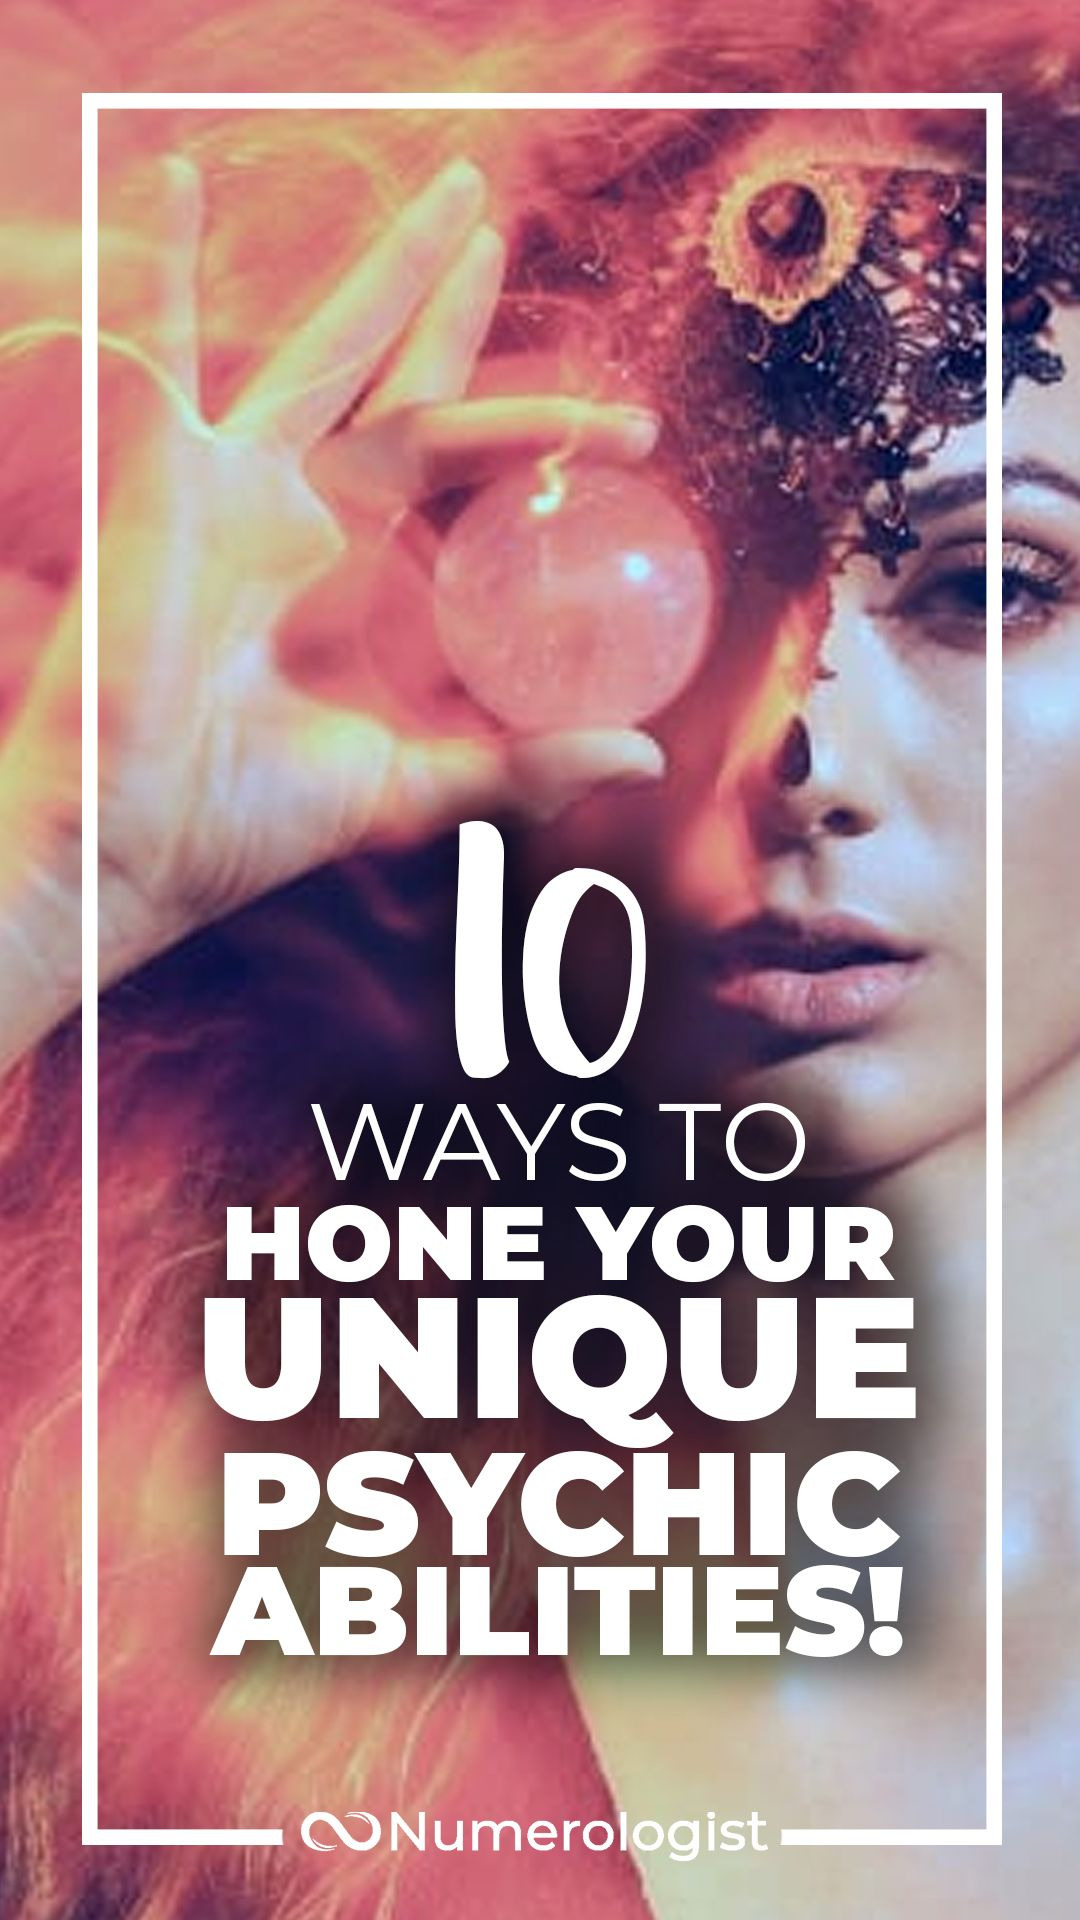 10 EASY WAYS To Sharpen Your Psychic Abilities Intuition!